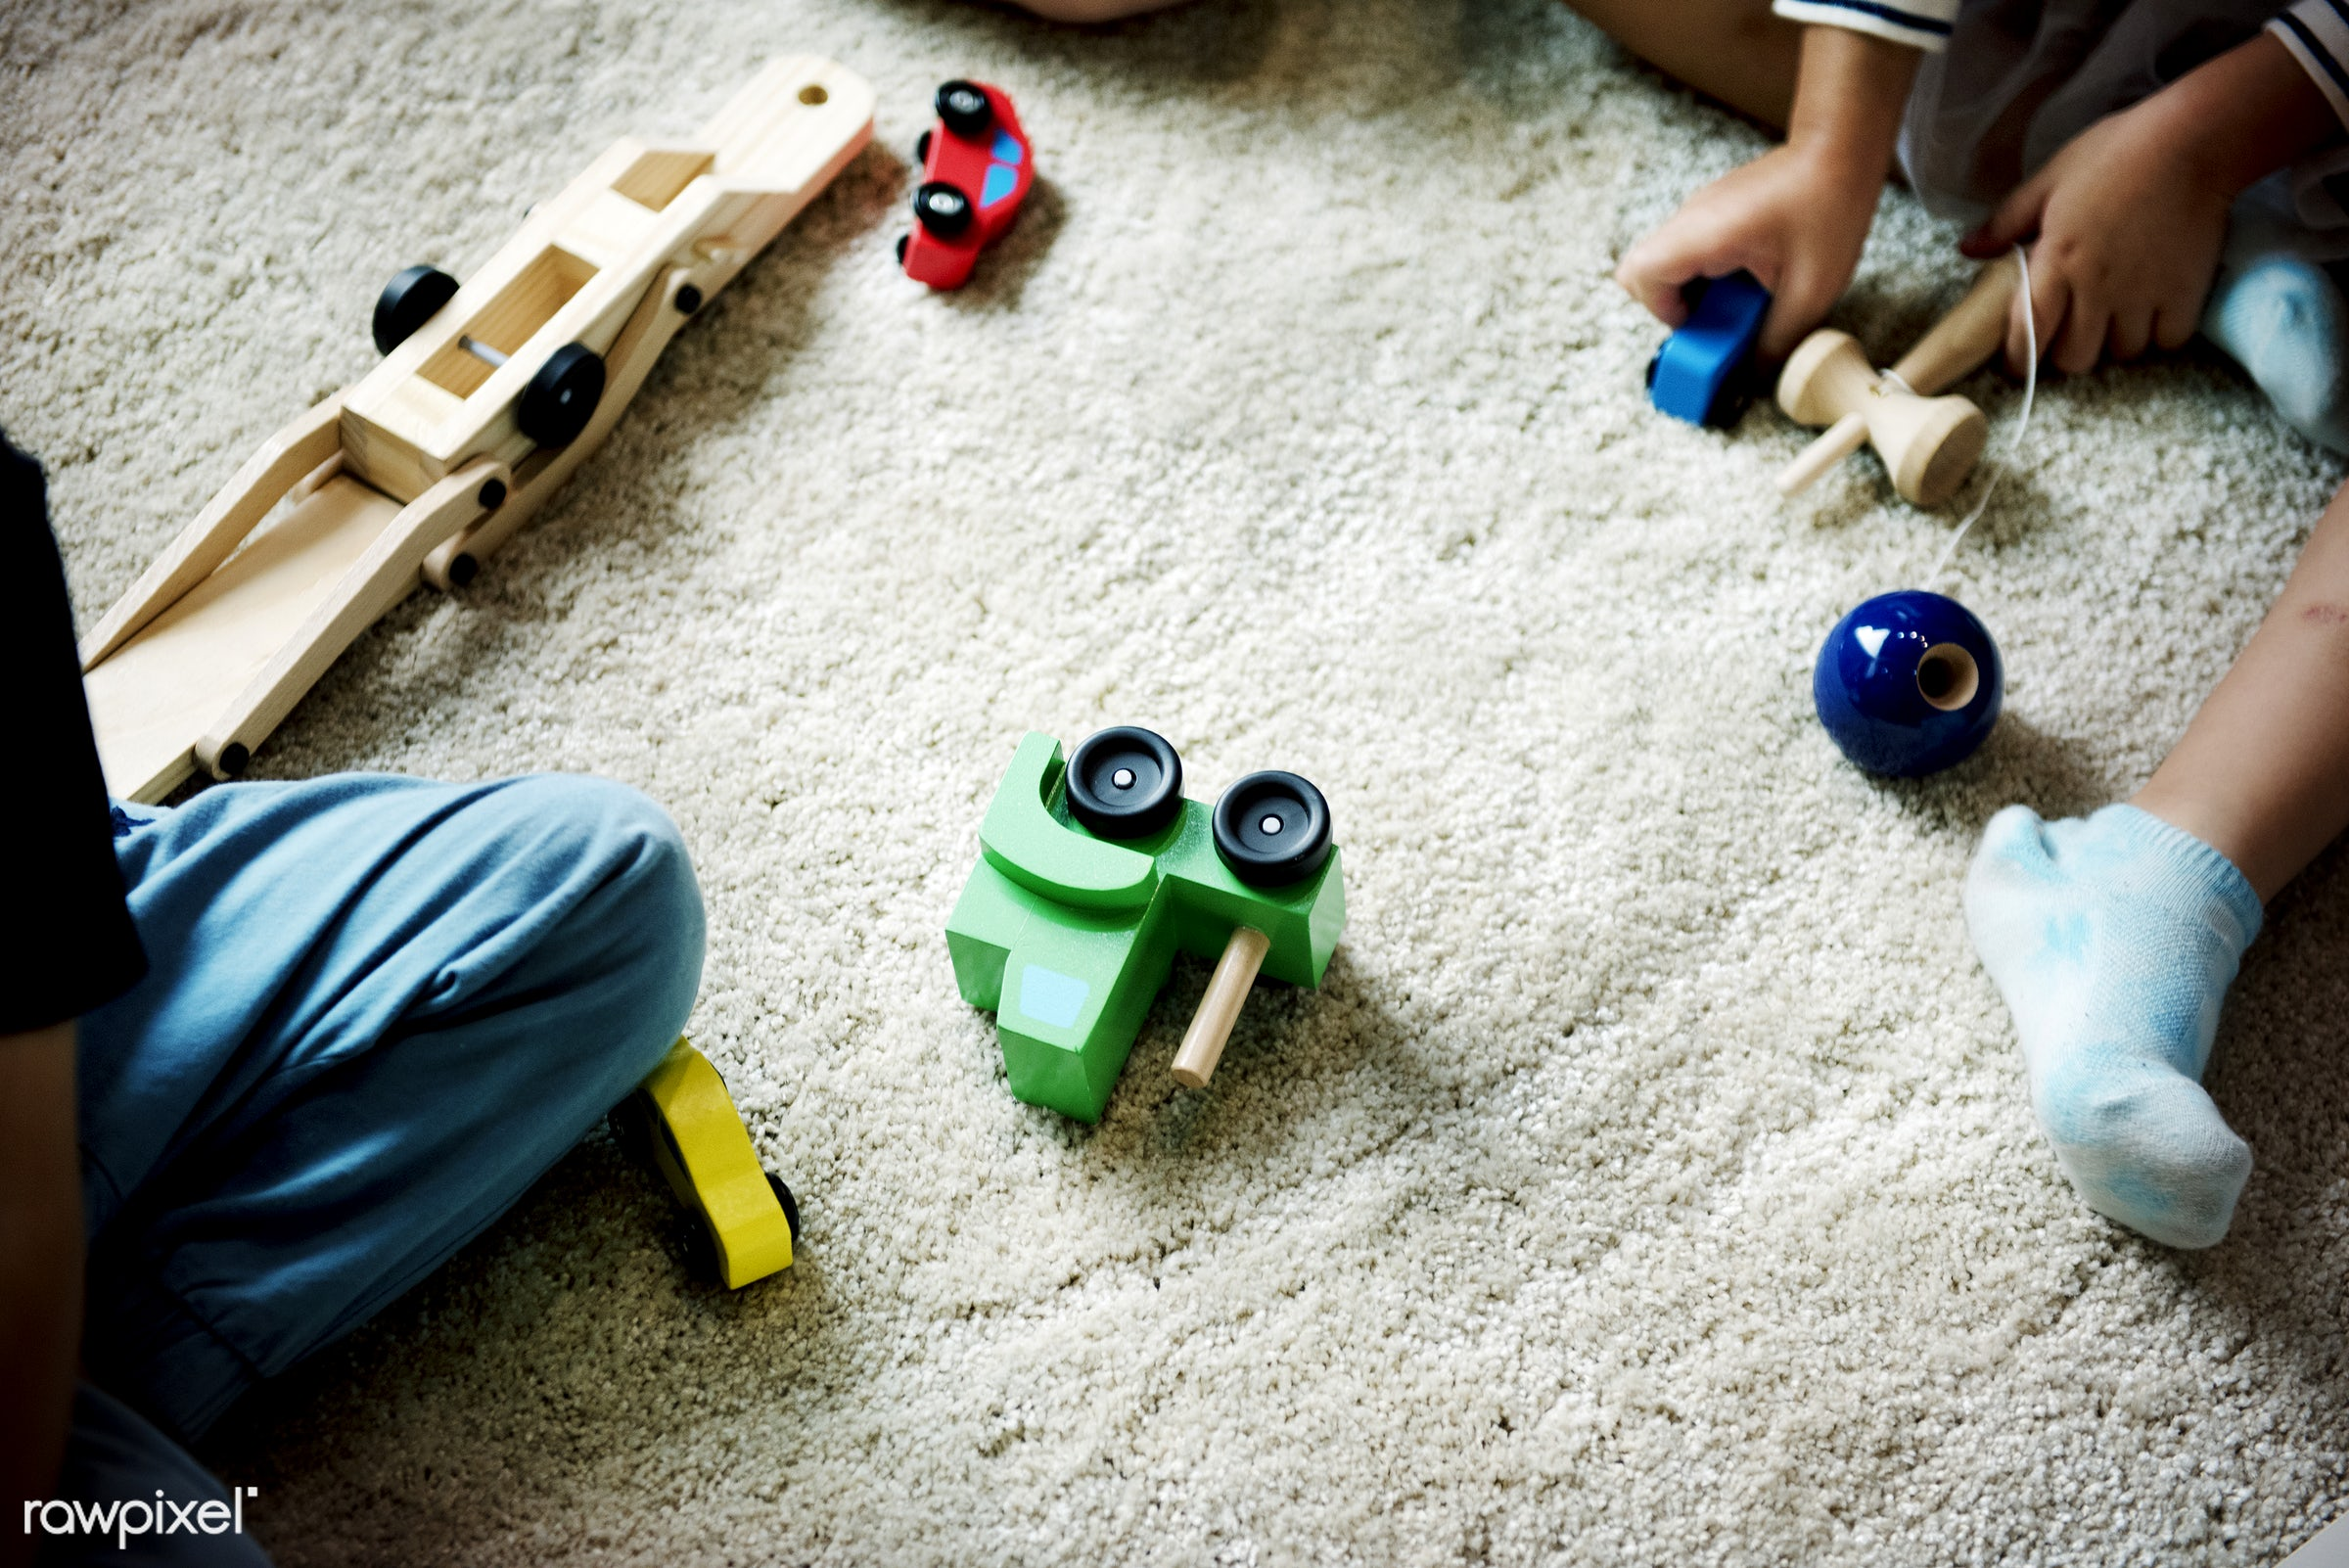 carpet, adorable, asia, asian, brother, casual, childhood, children, family, happiness, hobby, innocence, japan, japanese,...